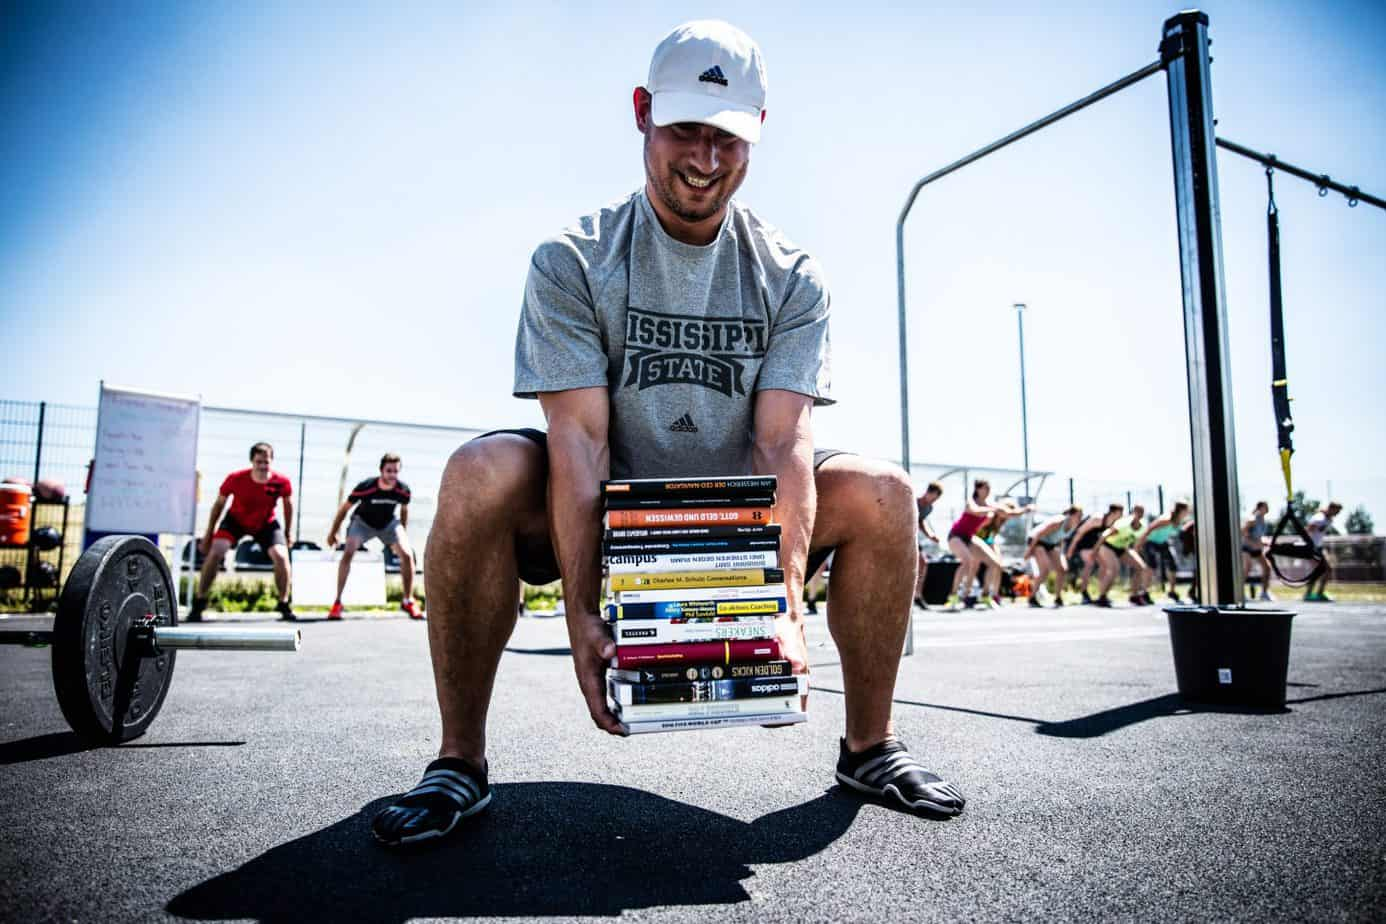 Top 10 Books For Student-Athletes